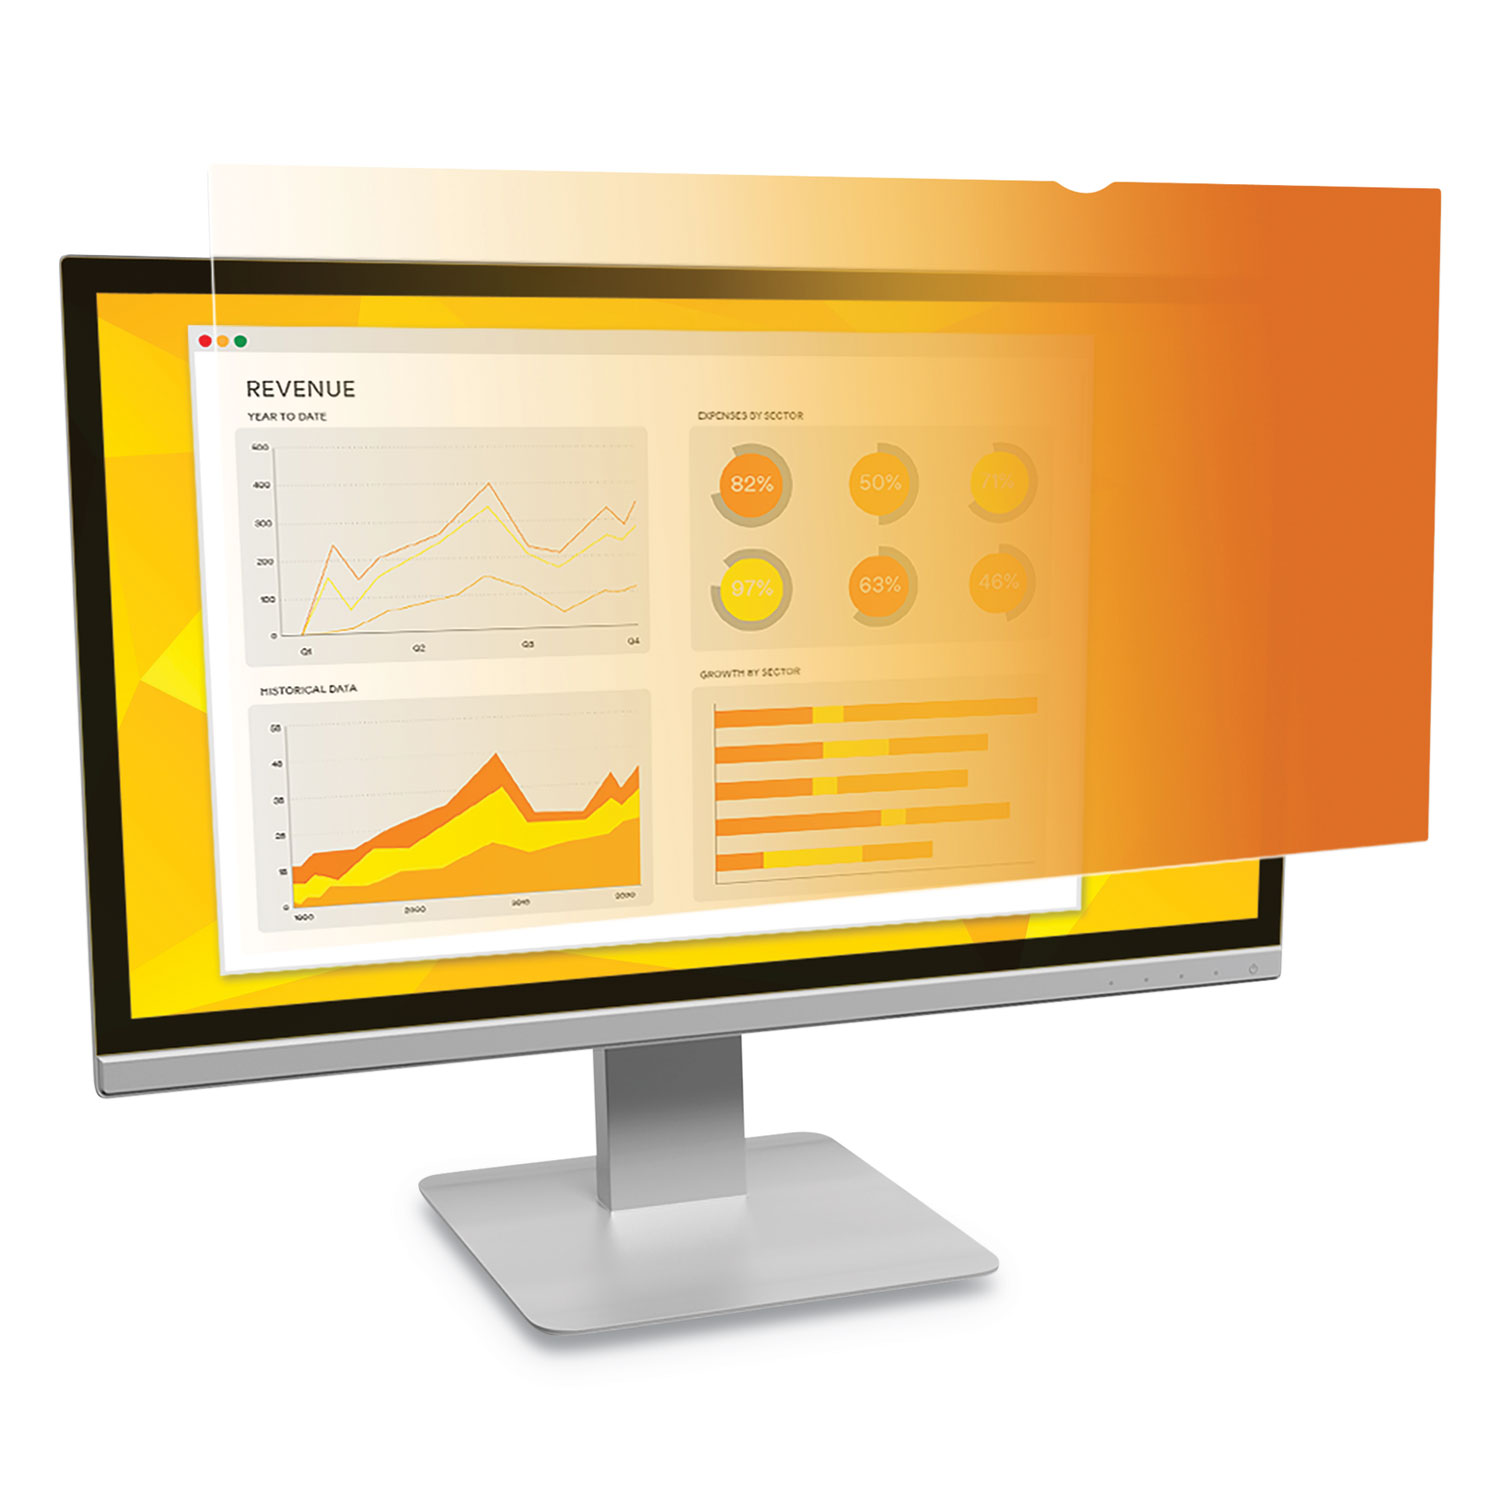 "Gold Frameless Privacy Filter For 24"" Widescreen Monitor, 16:9 Aspect Ratio"